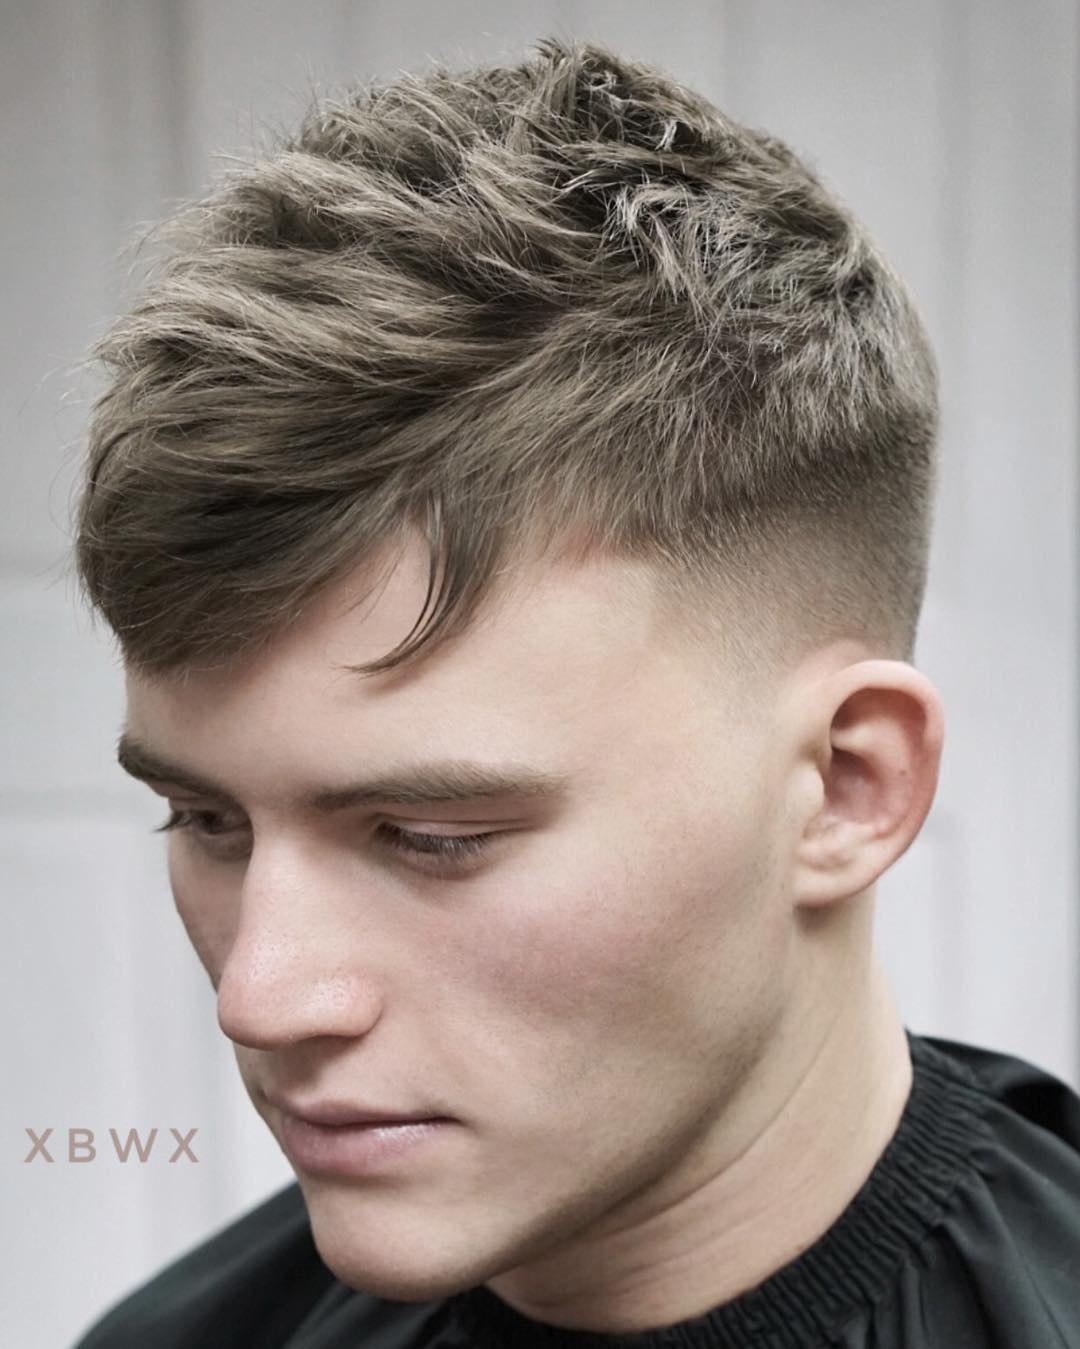 New Hairstyles For Men 2019 -> Men\'s Hairstyle Trends